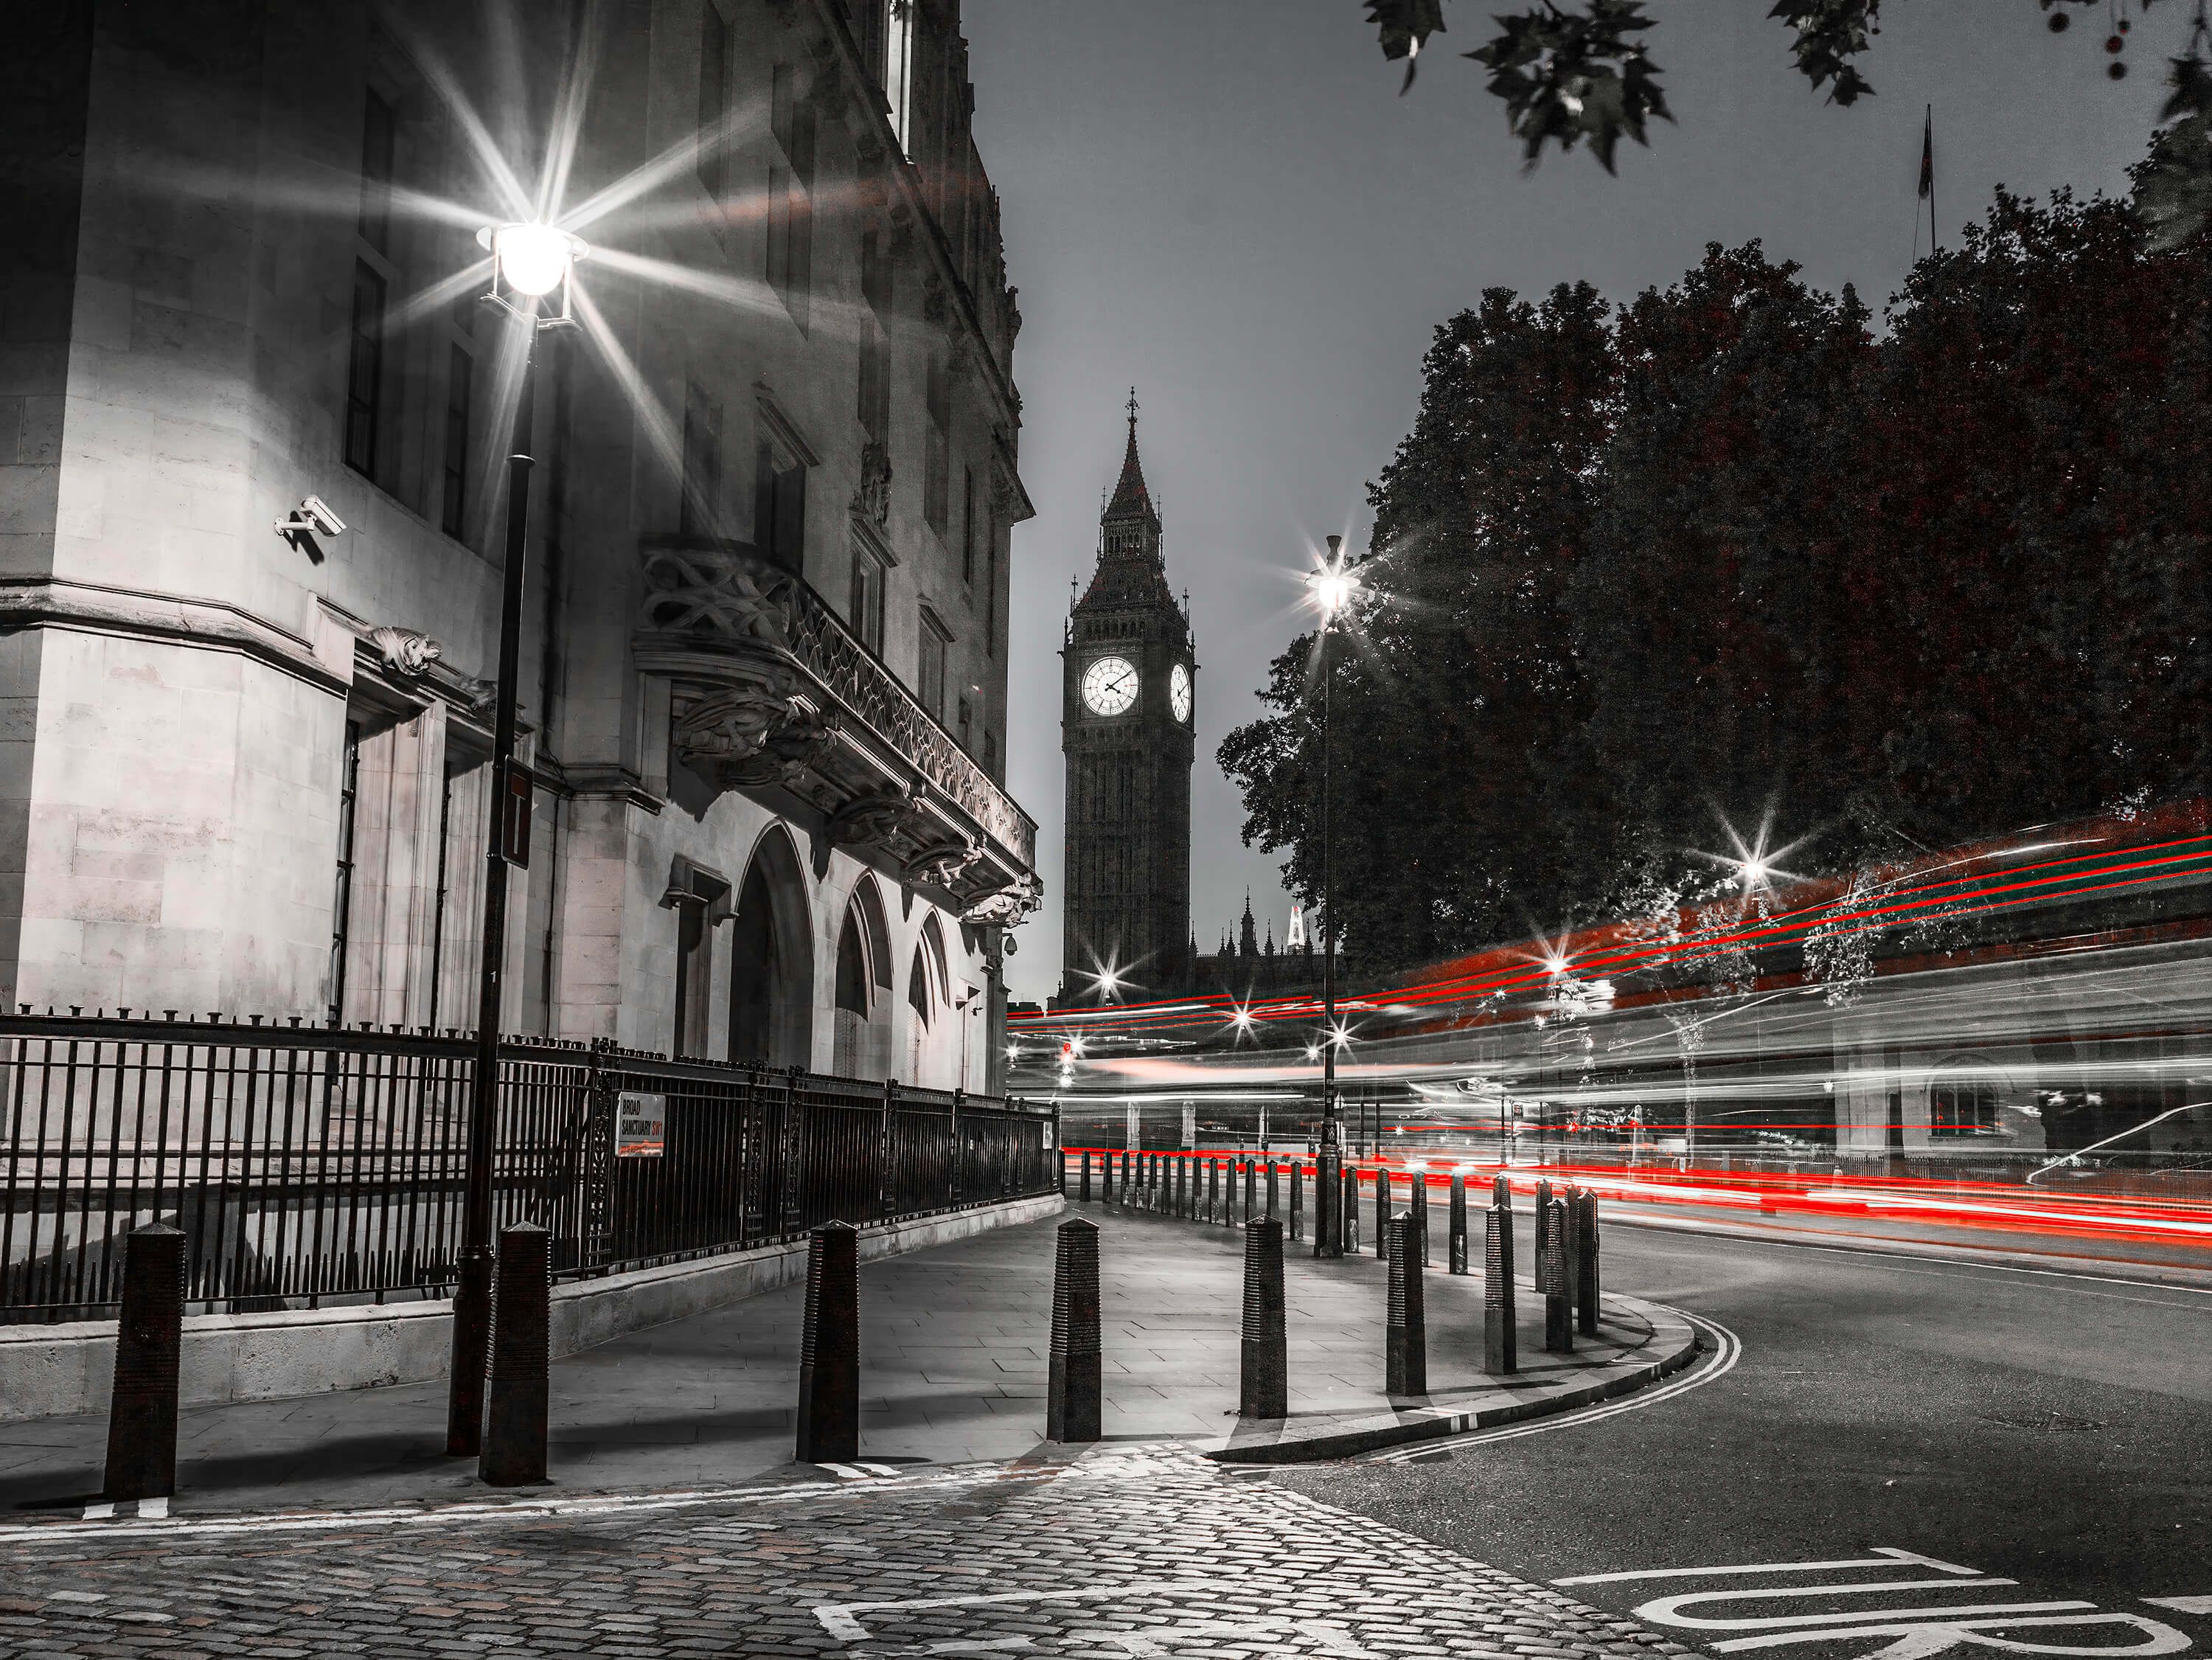 Big Ben from the street